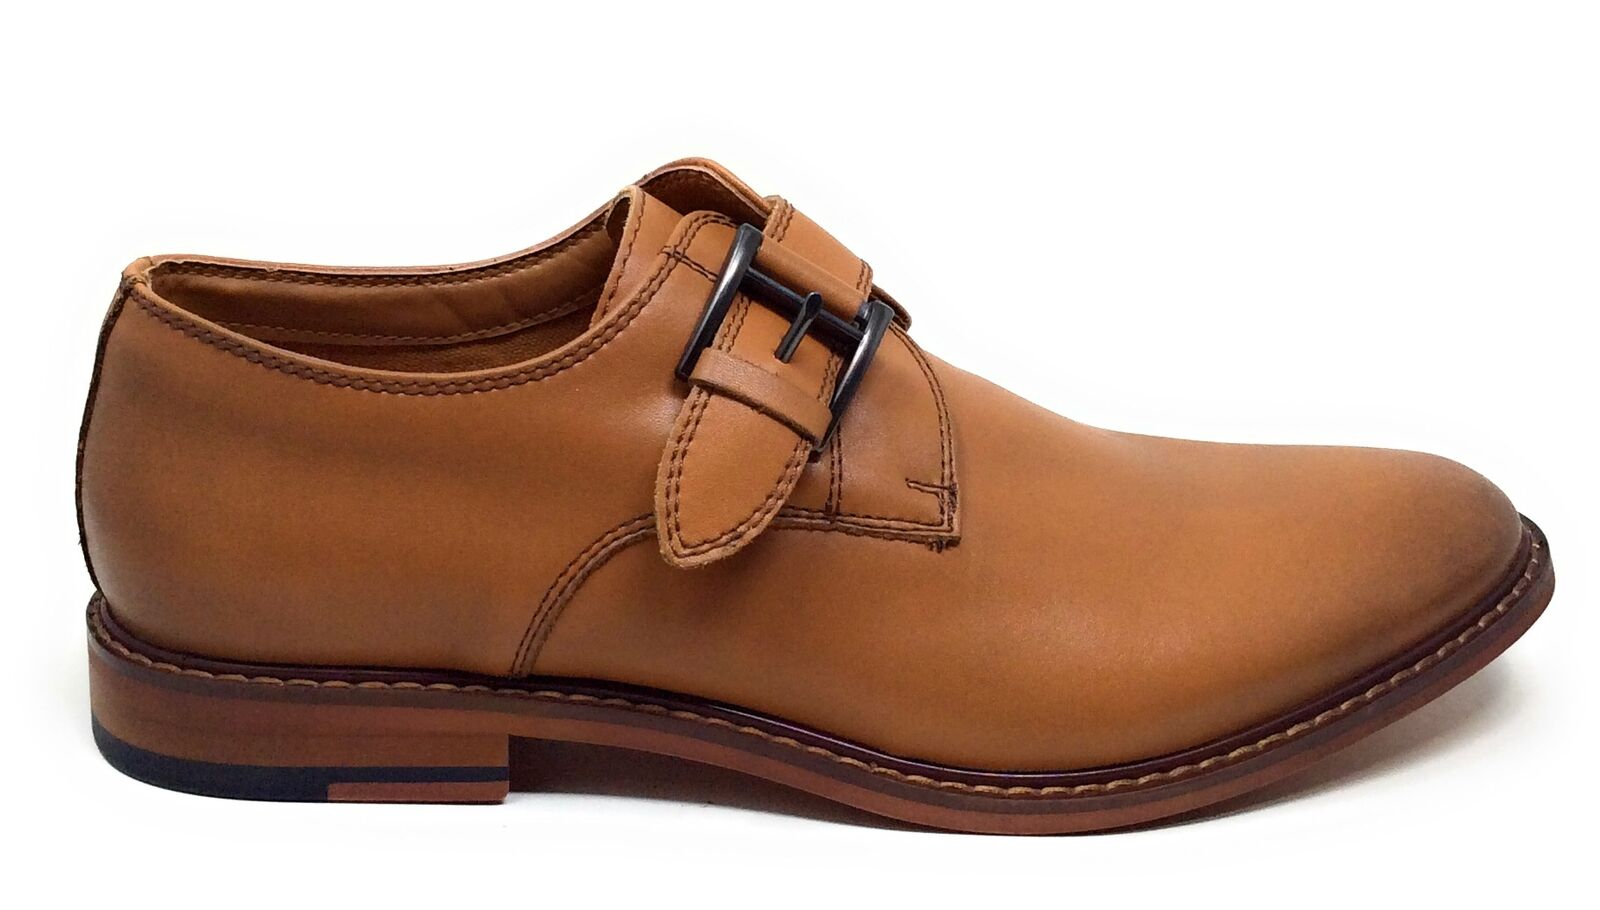 J75 By Jump Mens Parlay DRK Monk Strap Oxford Dress Shoes Tan Size 9 M US